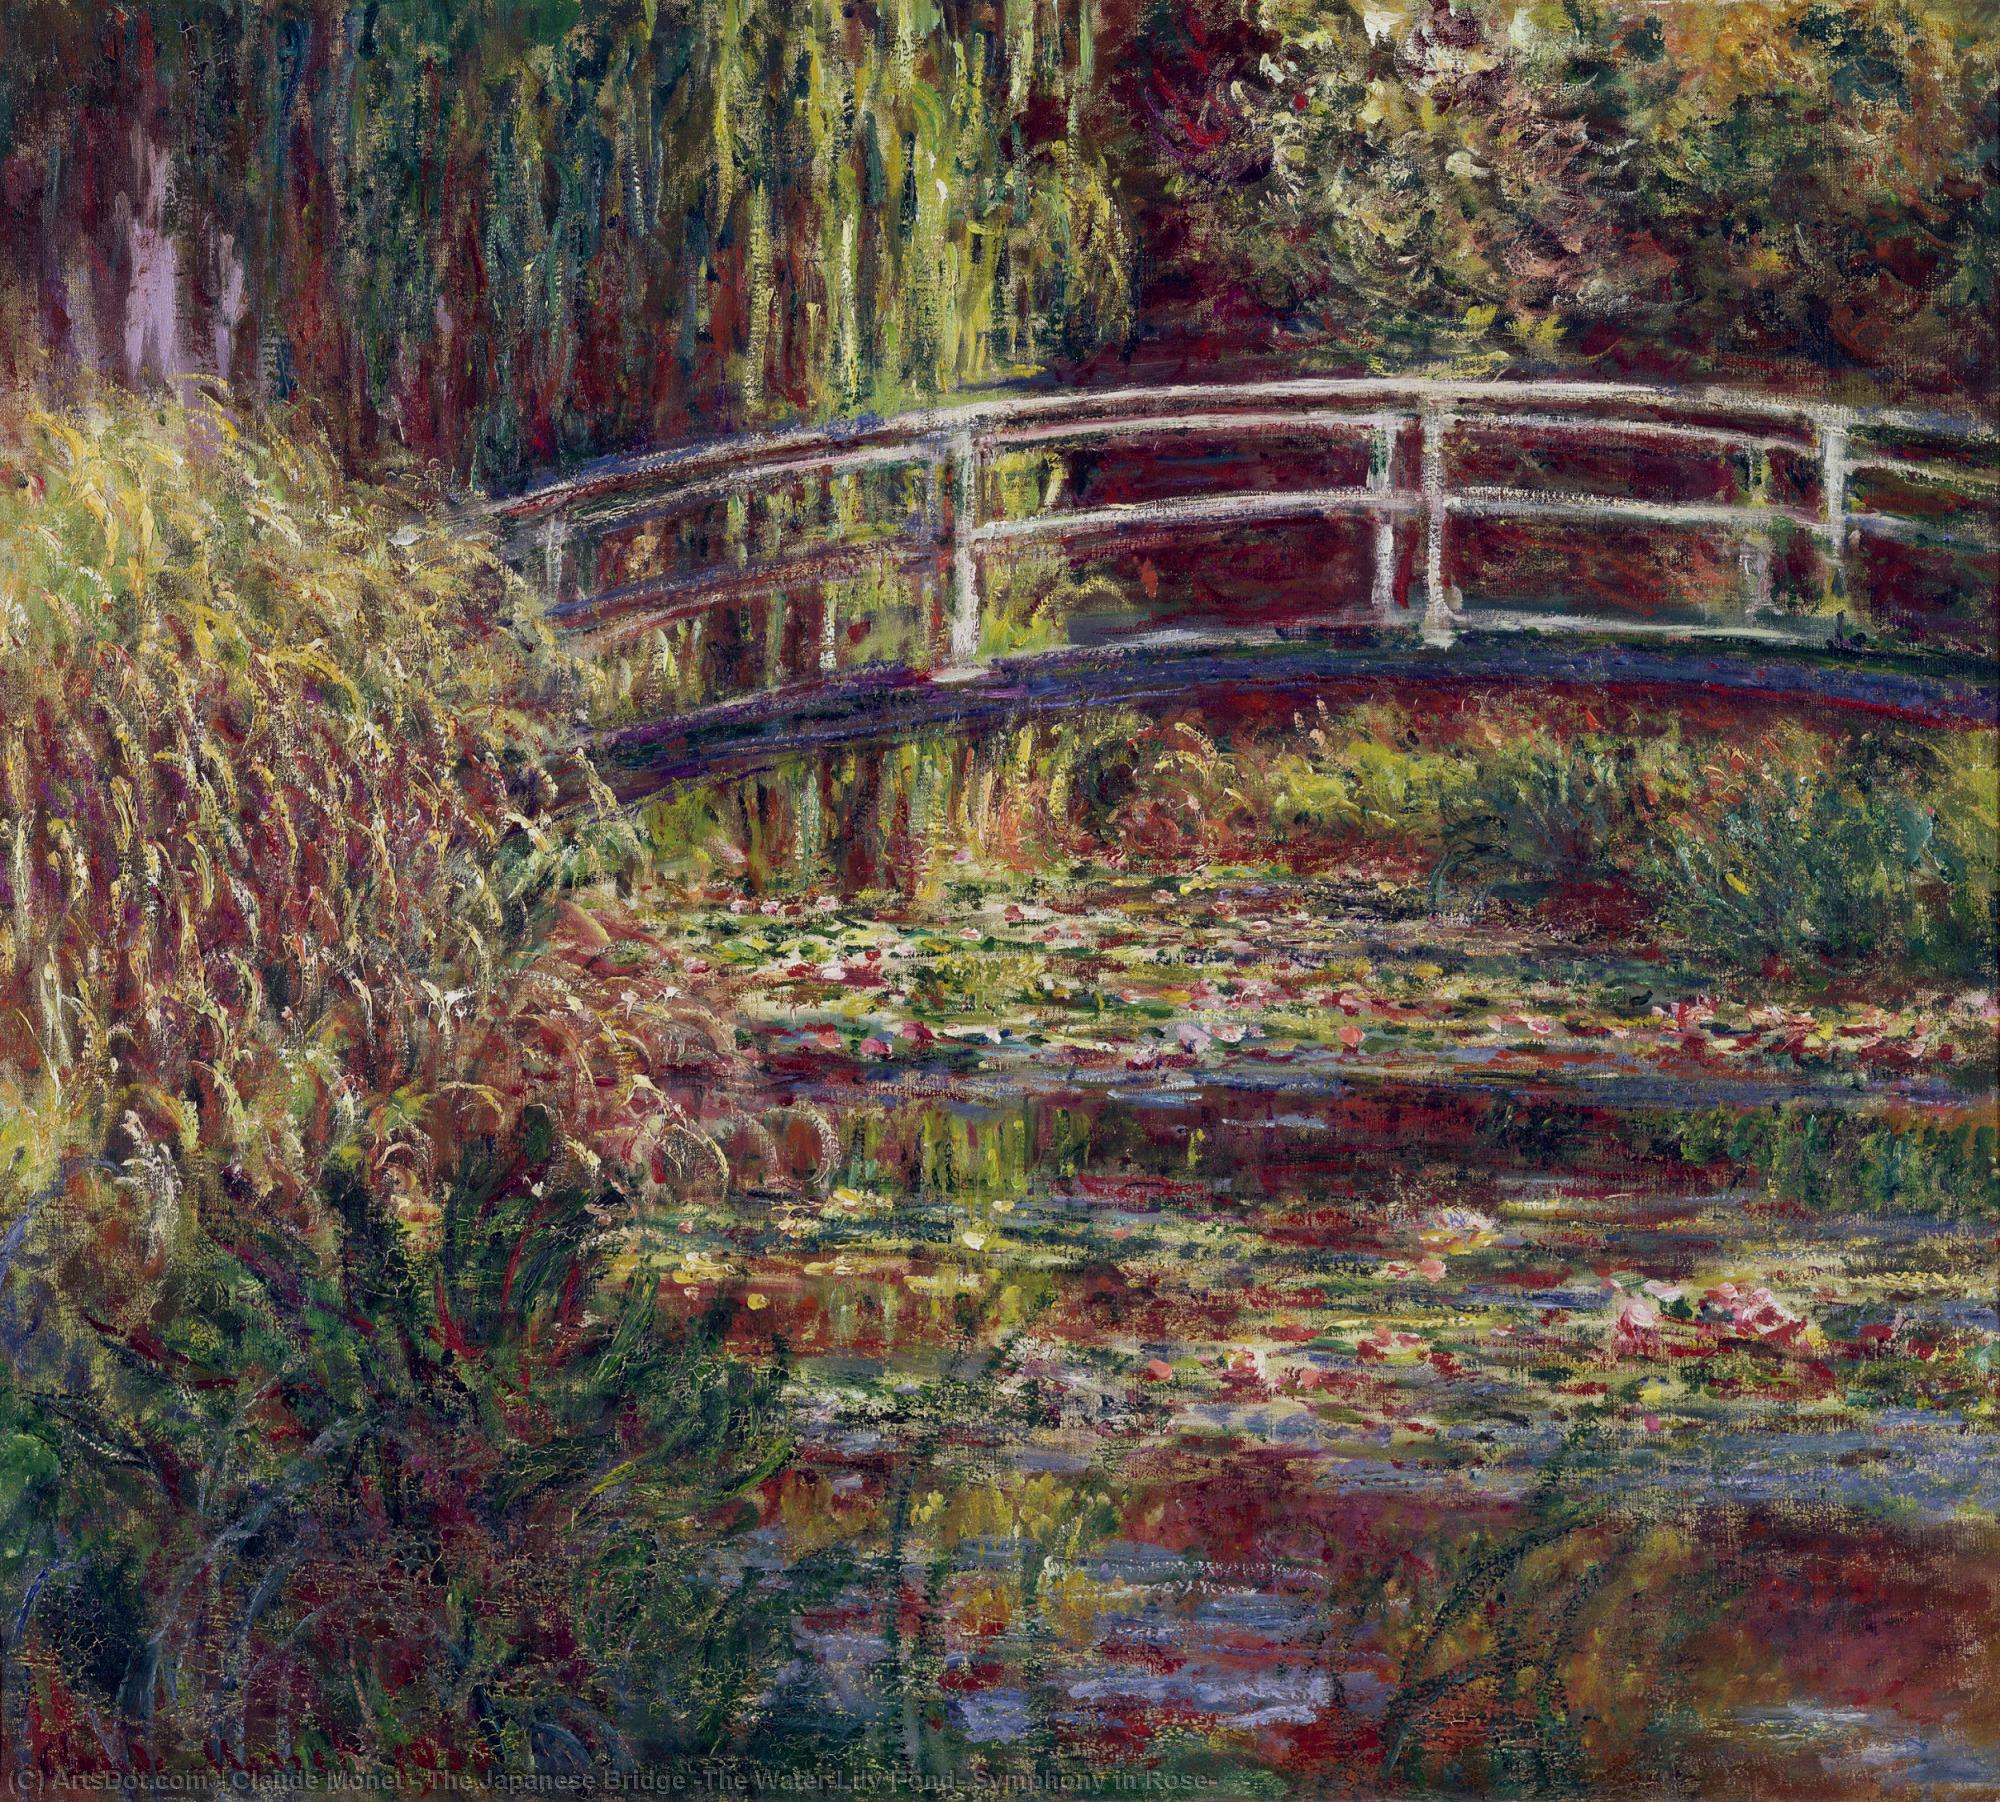 Wikioo.org - The Encyclopedia of Fine Arts - Painting, Artwork by Claude Monet - The Japanese Bridge (The Water-Lily Pond, Symphony in Rose)